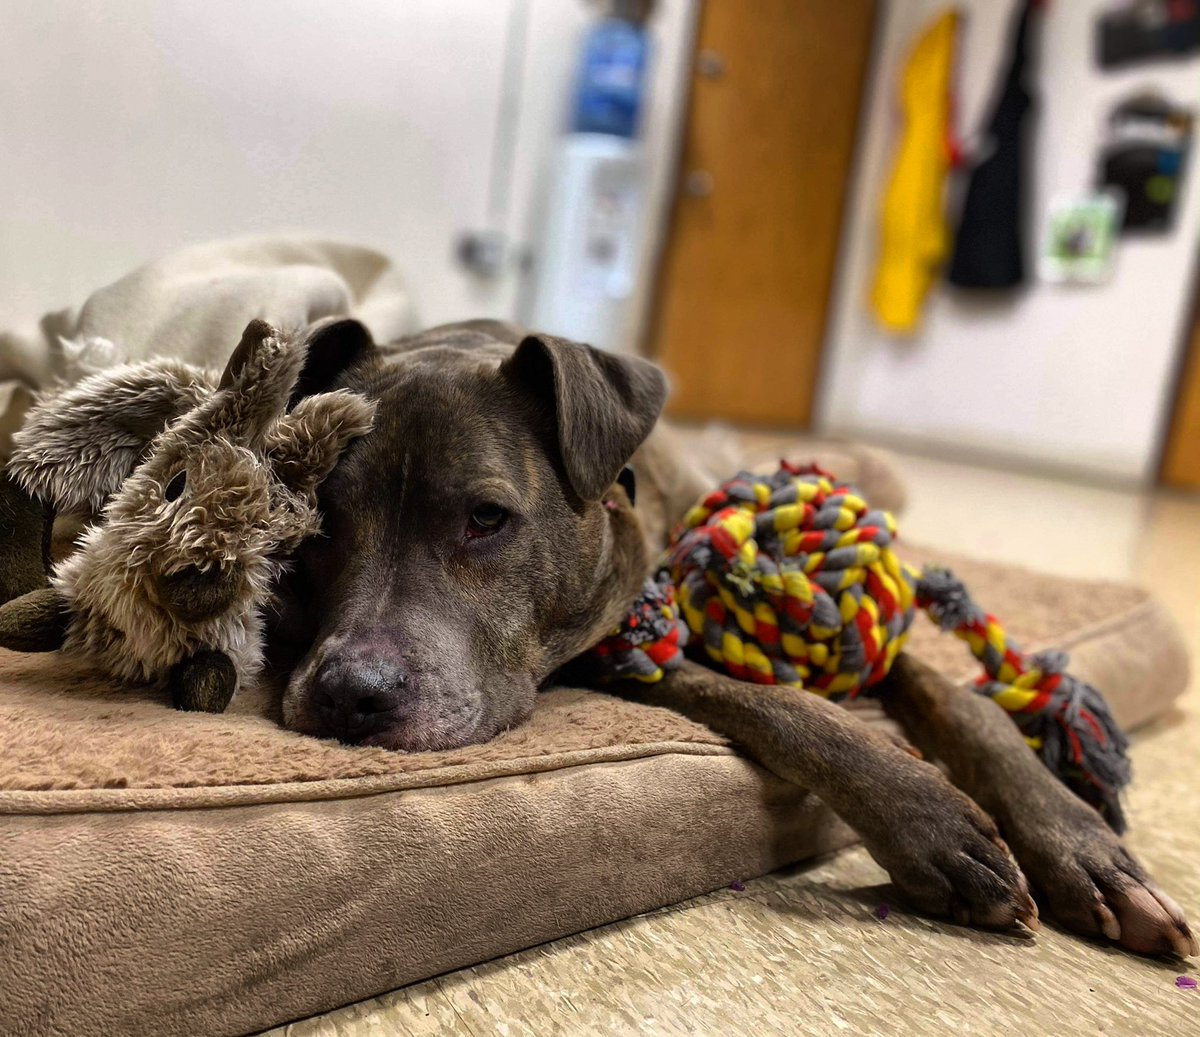 WAITING... WONDERING... HOPING... SOMEONE WILL CHOOSE HIM   #rescueonly #k9hour #rehomehour #forgottensoulshour @SilentV91140832 @GRShares   Town of Brookhaven Animal Shelter 300 Horseblock Road Brookhaven, NY 11719 (631) 451-6950